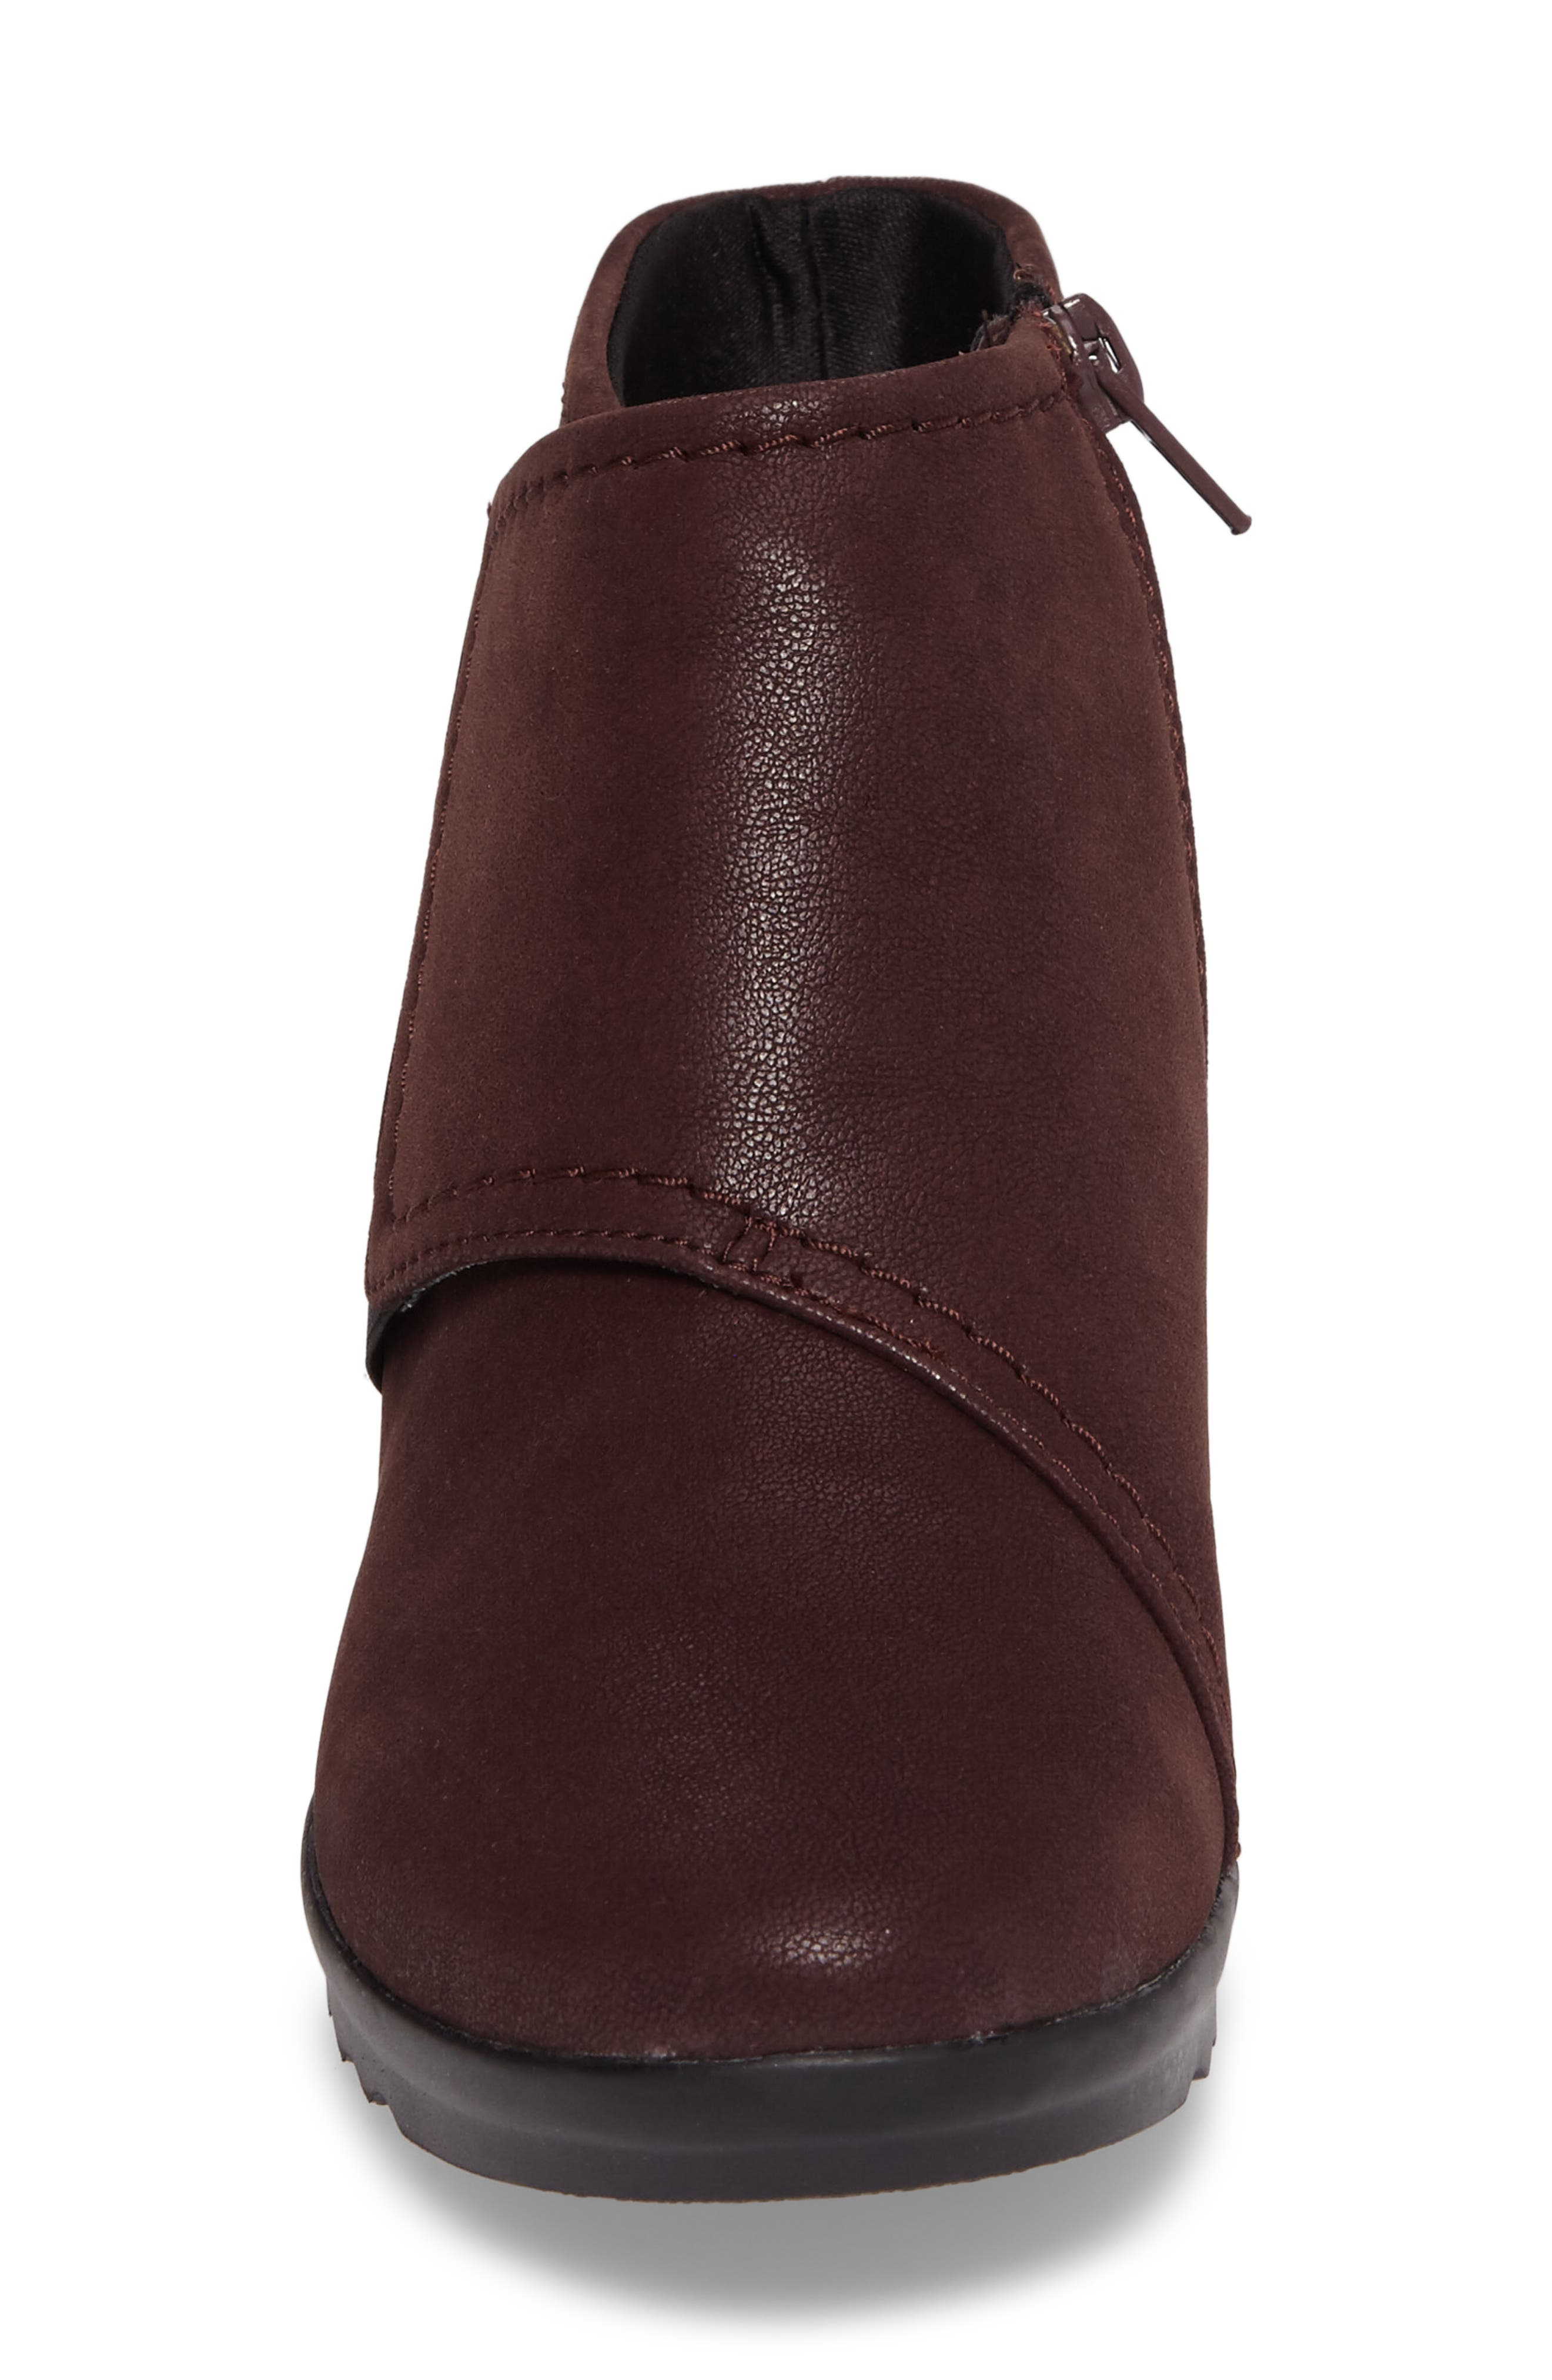 Caddell Rush Bootie,                             Alternate thumbnail 4, color,                             Burgundy Leather